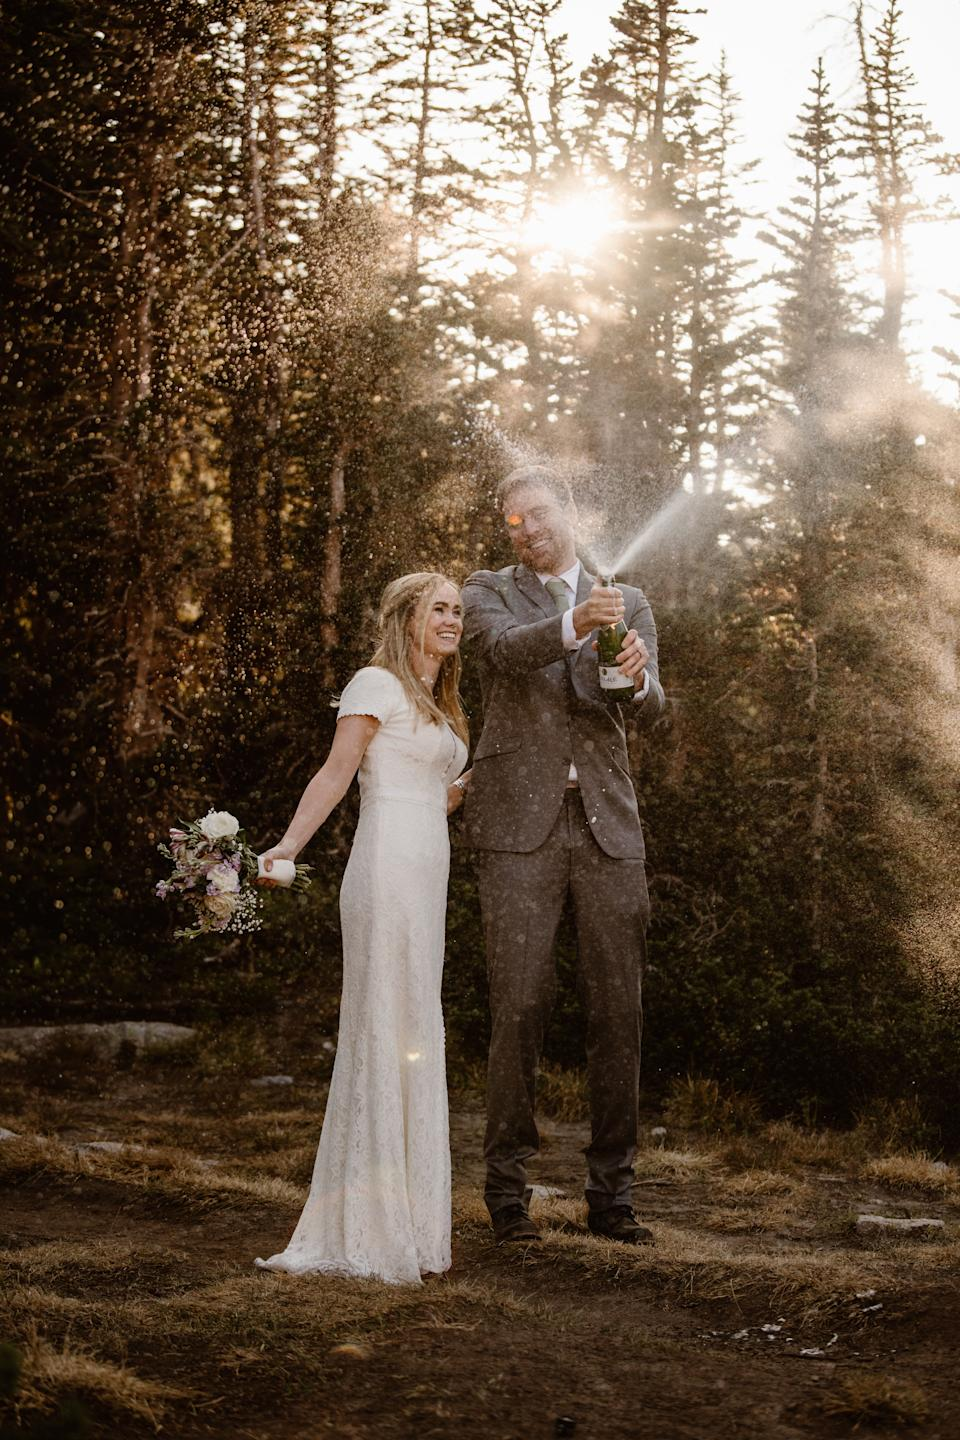 """The adventurous duo wanted to elope against a scenic backdrop. (Photo: <a href=""""https://adventureinstead.com/"""" target=""""_blank"""">Adventure Instead - Elopement Photographers & Guides</a>)"""